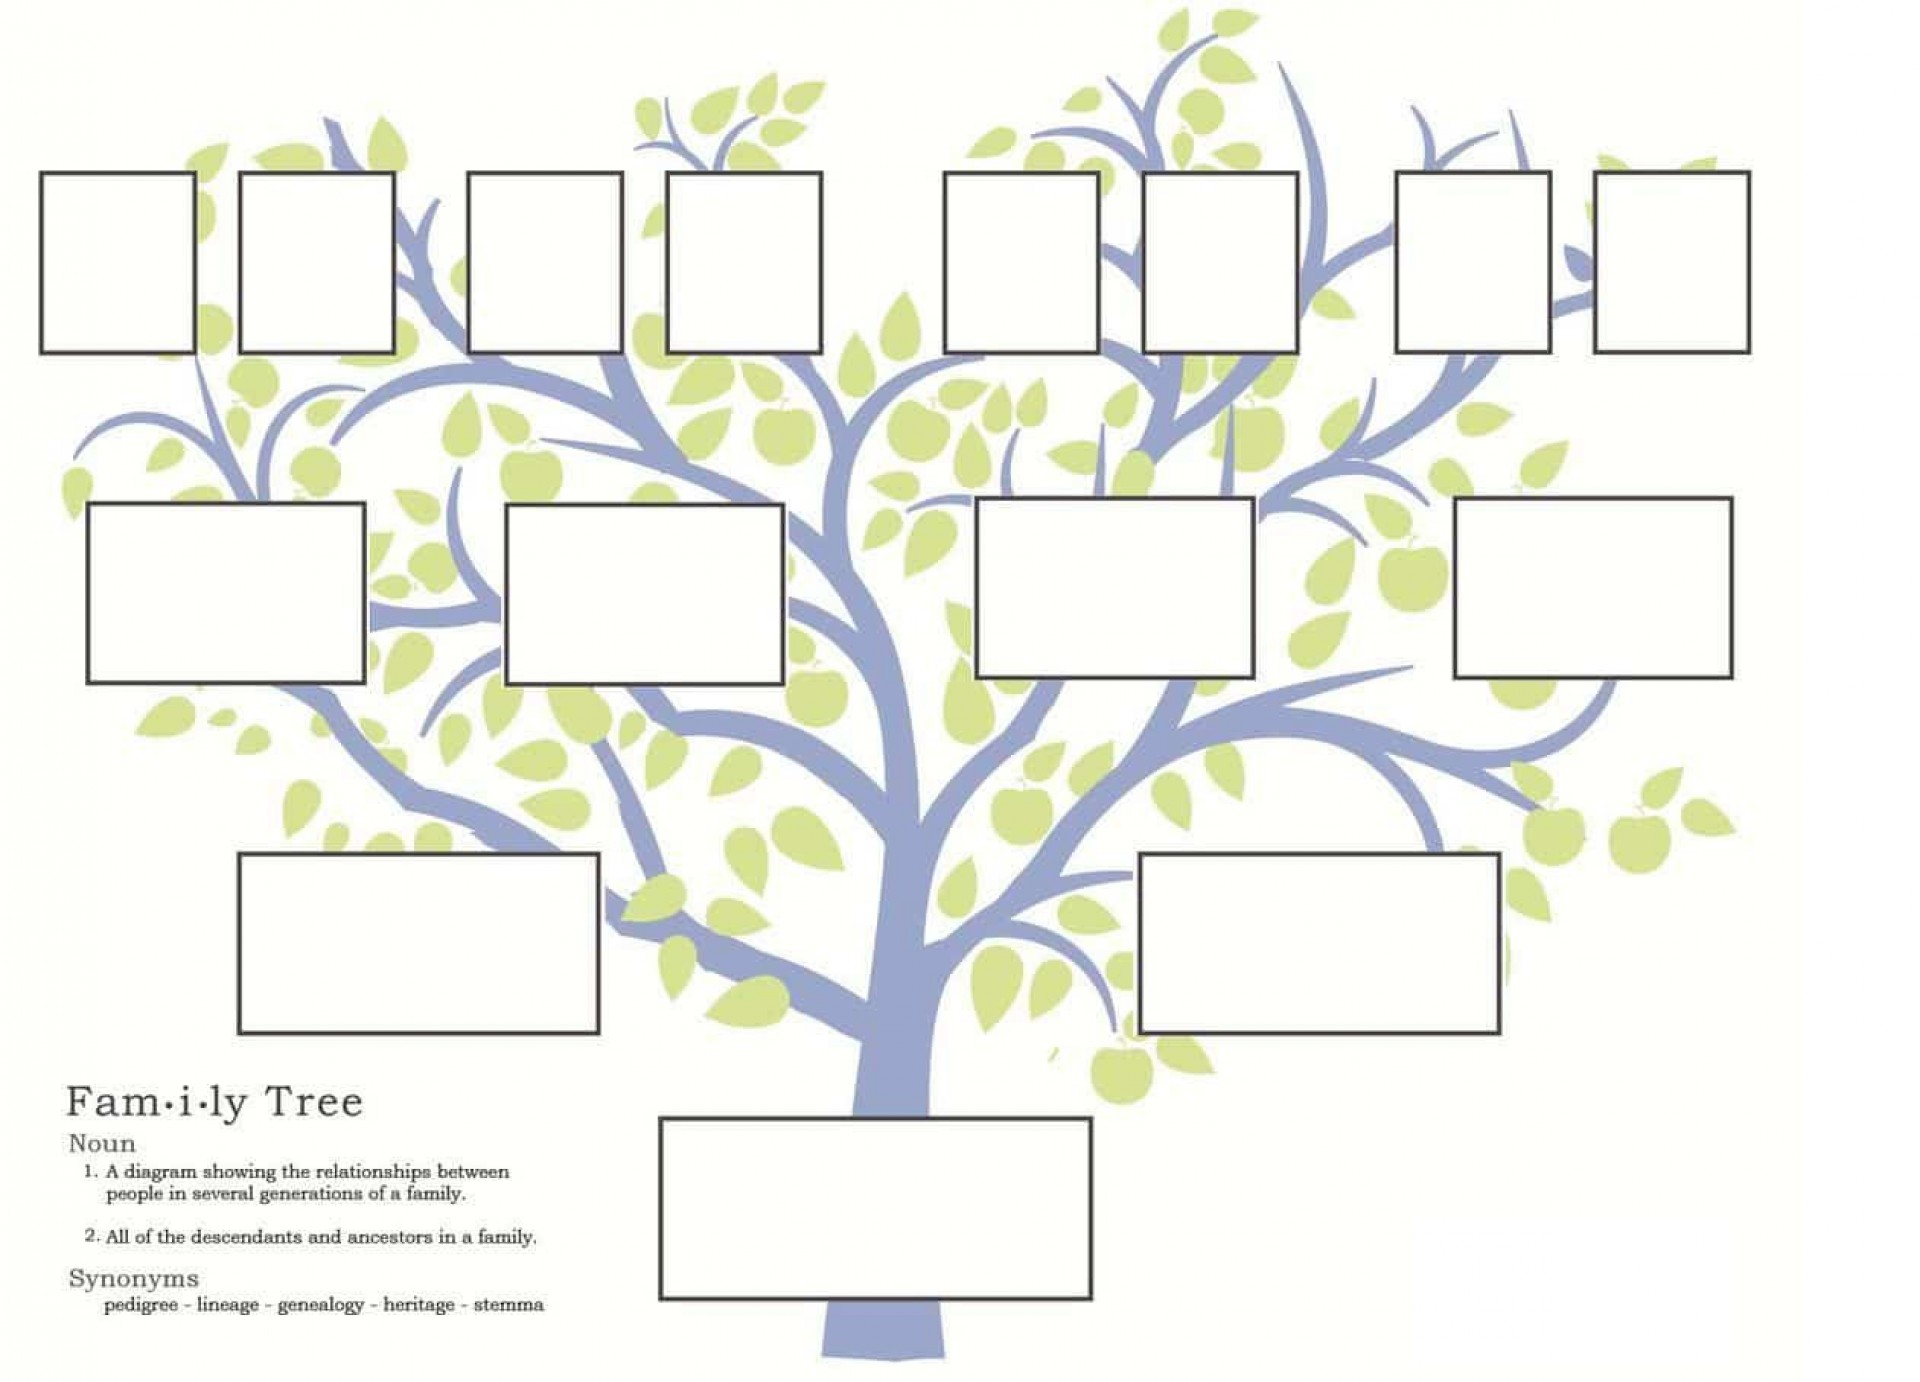 007 Archaicawful Free Editable Family Tree Template Highest Quality  Templates Pdf Powerpoint With Photo1920